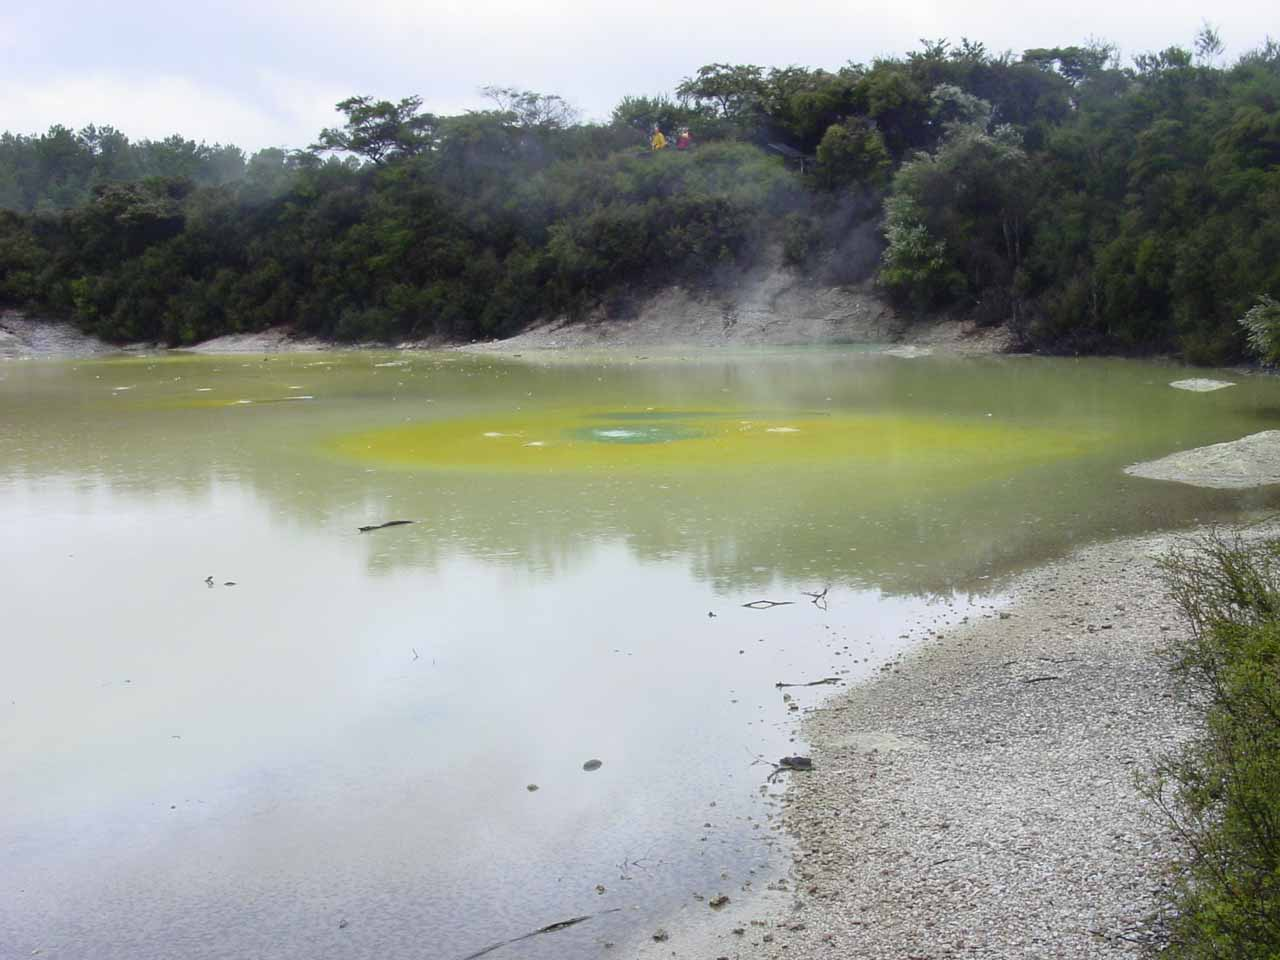 A deceptively calm yet strikingly colorful pool in Wai-o-tapu